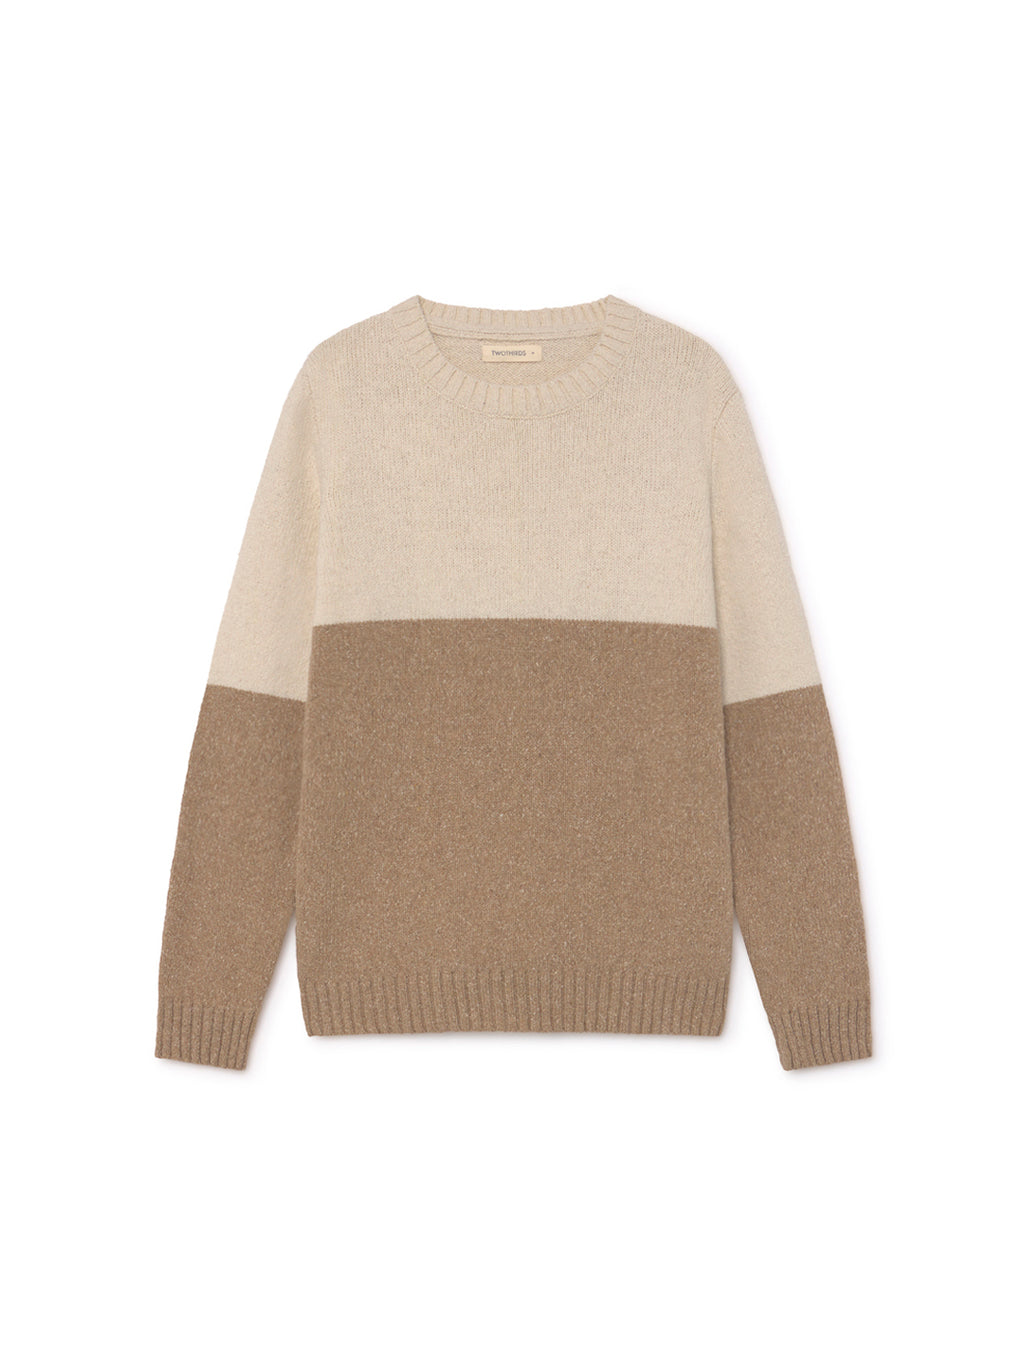 TWOTHIRDS Mens Knit: Jolo - Beige front